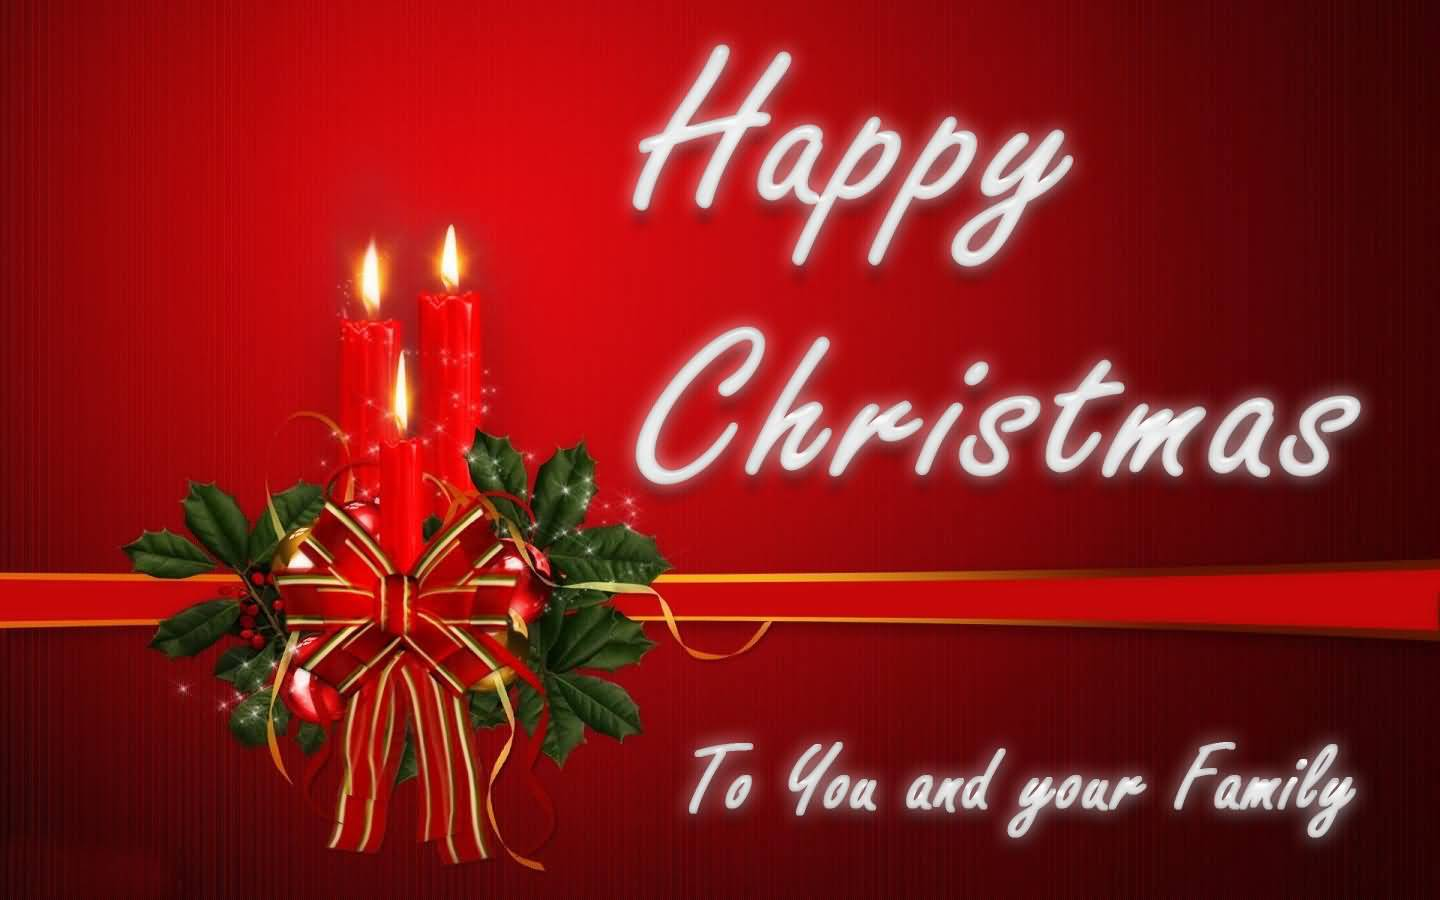 Happy Christmas To You And Your Family